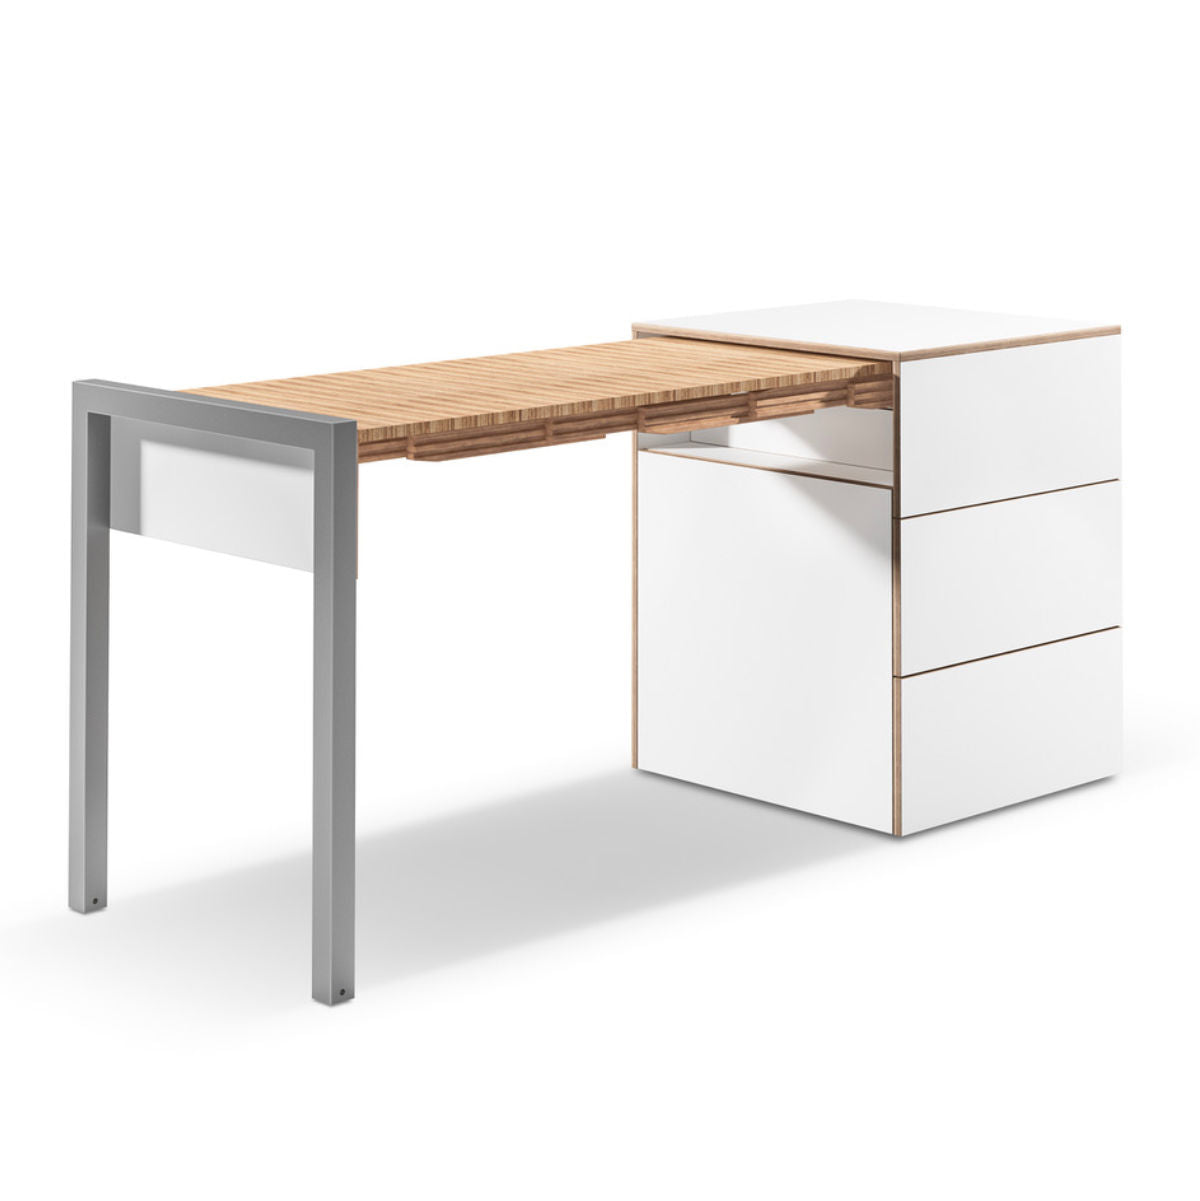 Alwin's Space Box Extendable Table Drawers , White/Beech Laminated Veneer